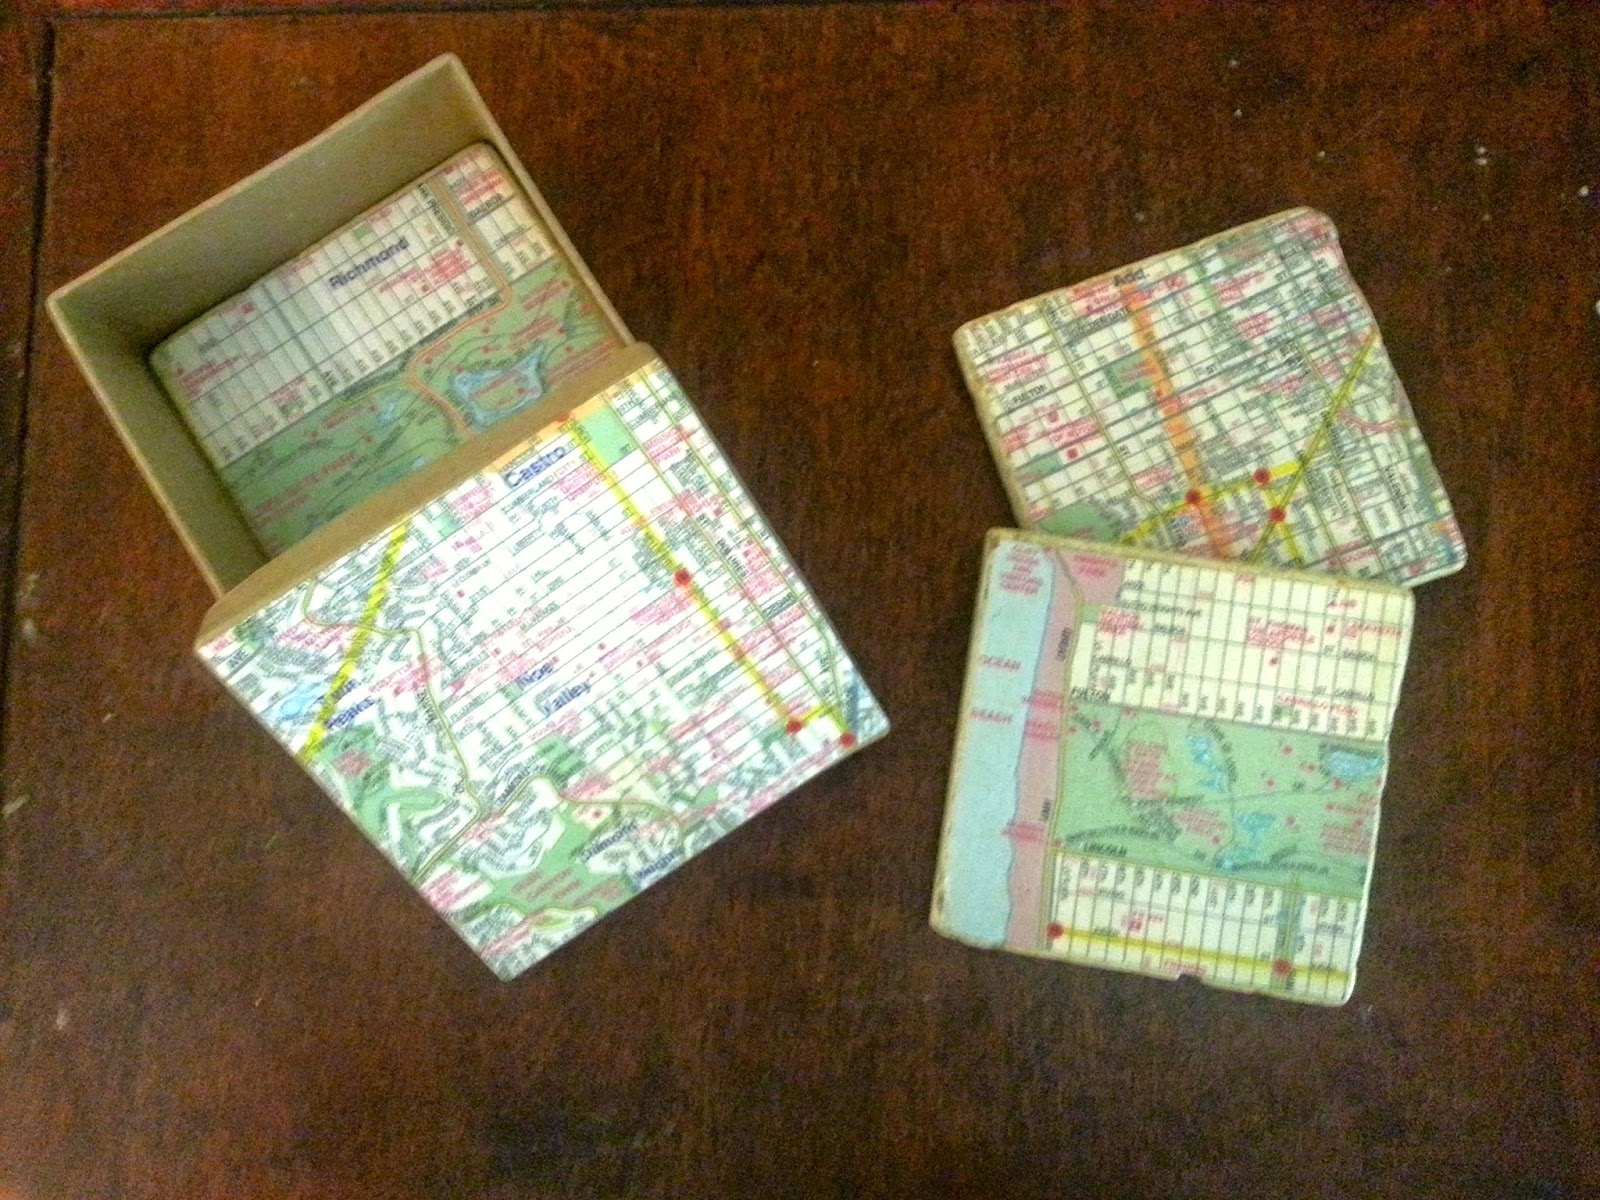 tile coasters using maps